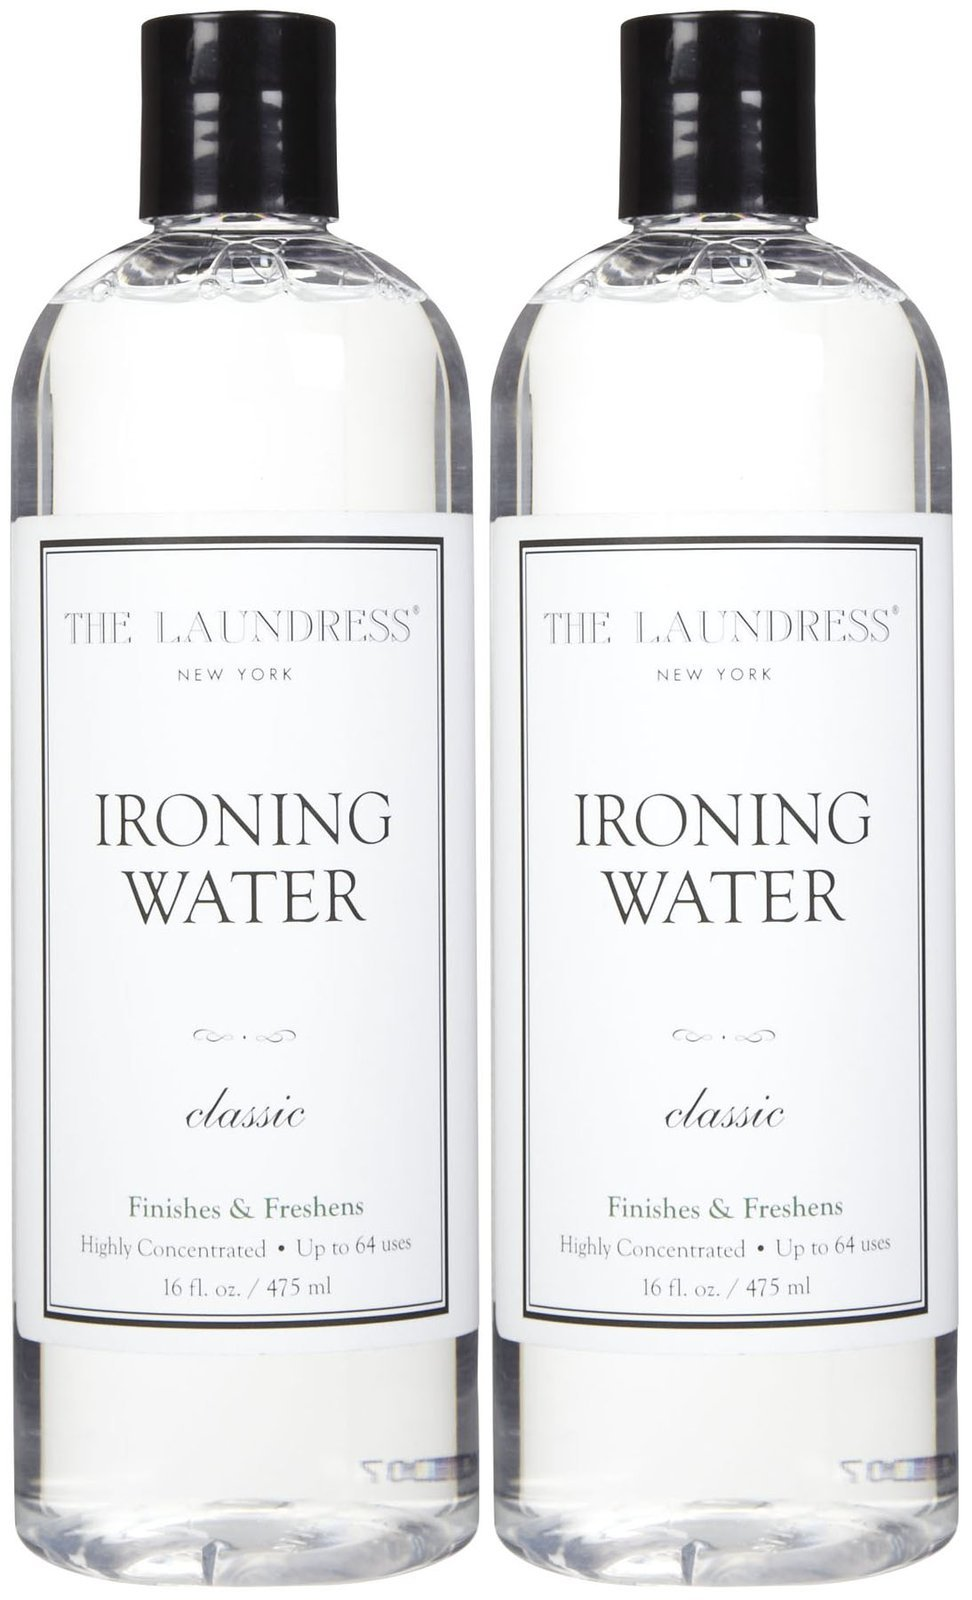 The Laundress Ironing Water, Classic - 16 oz - 2 pk